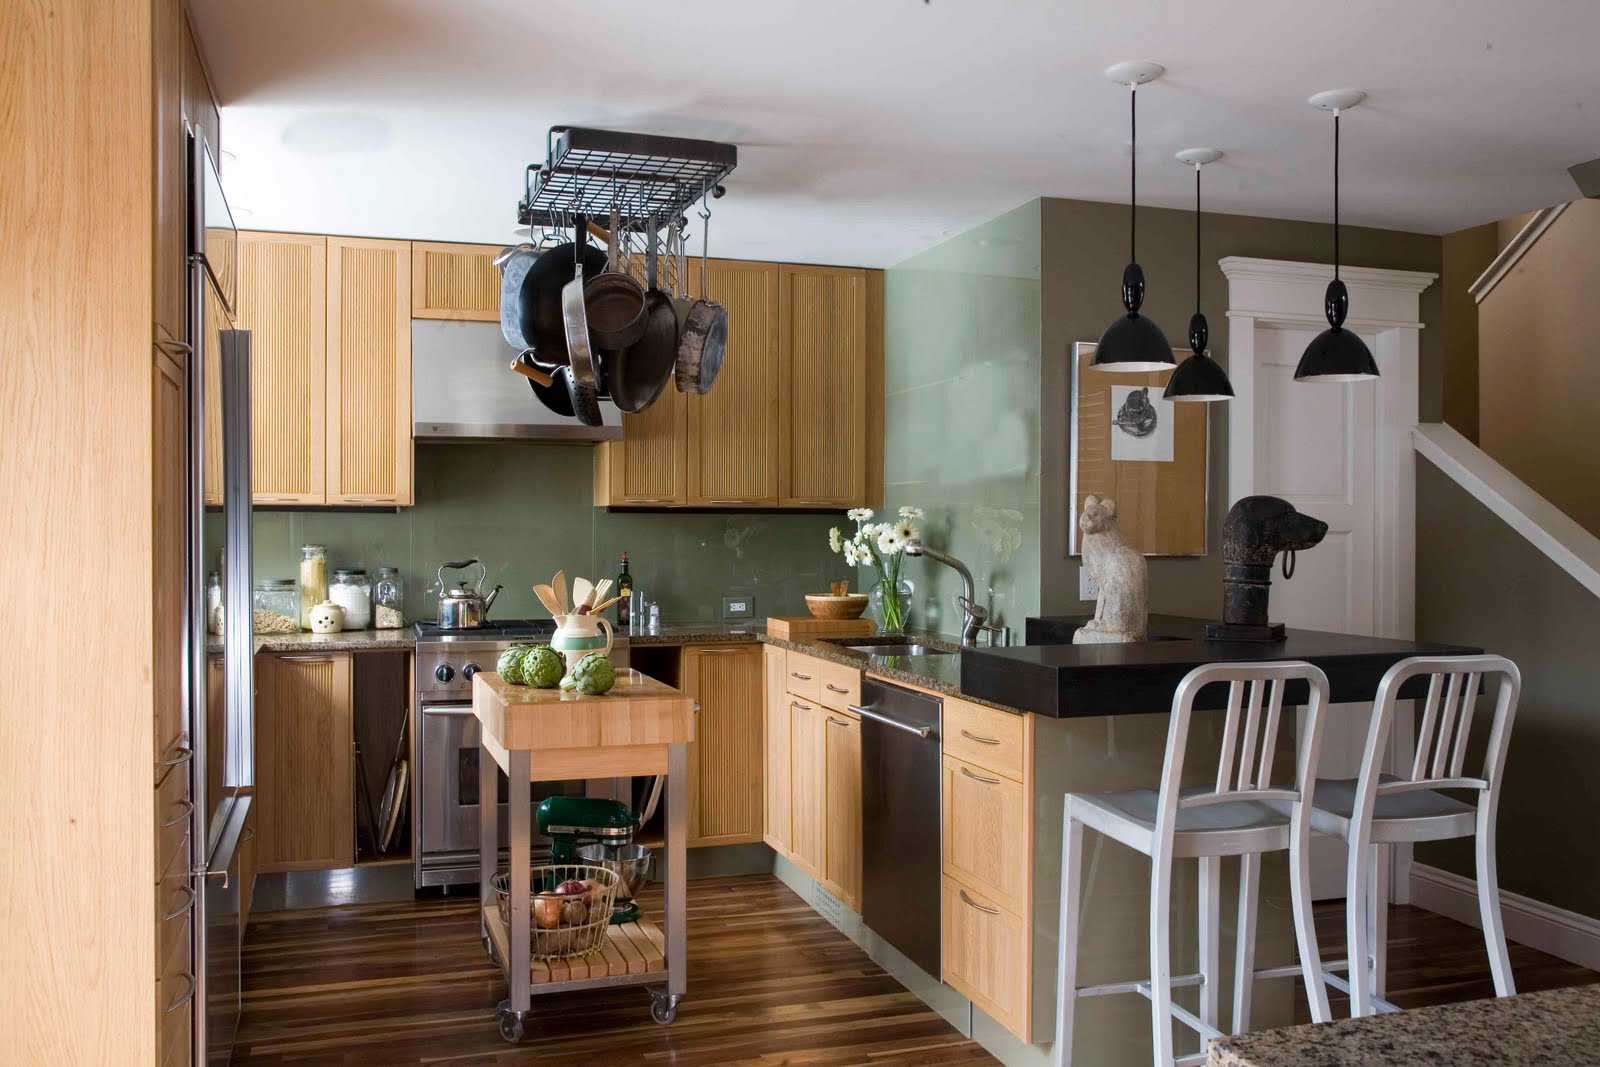 exotic-black-modular-pendant-lamps-mixed-with-white-wooden-eco-friendly-kitchen-interiors-on-laminate-floor-design